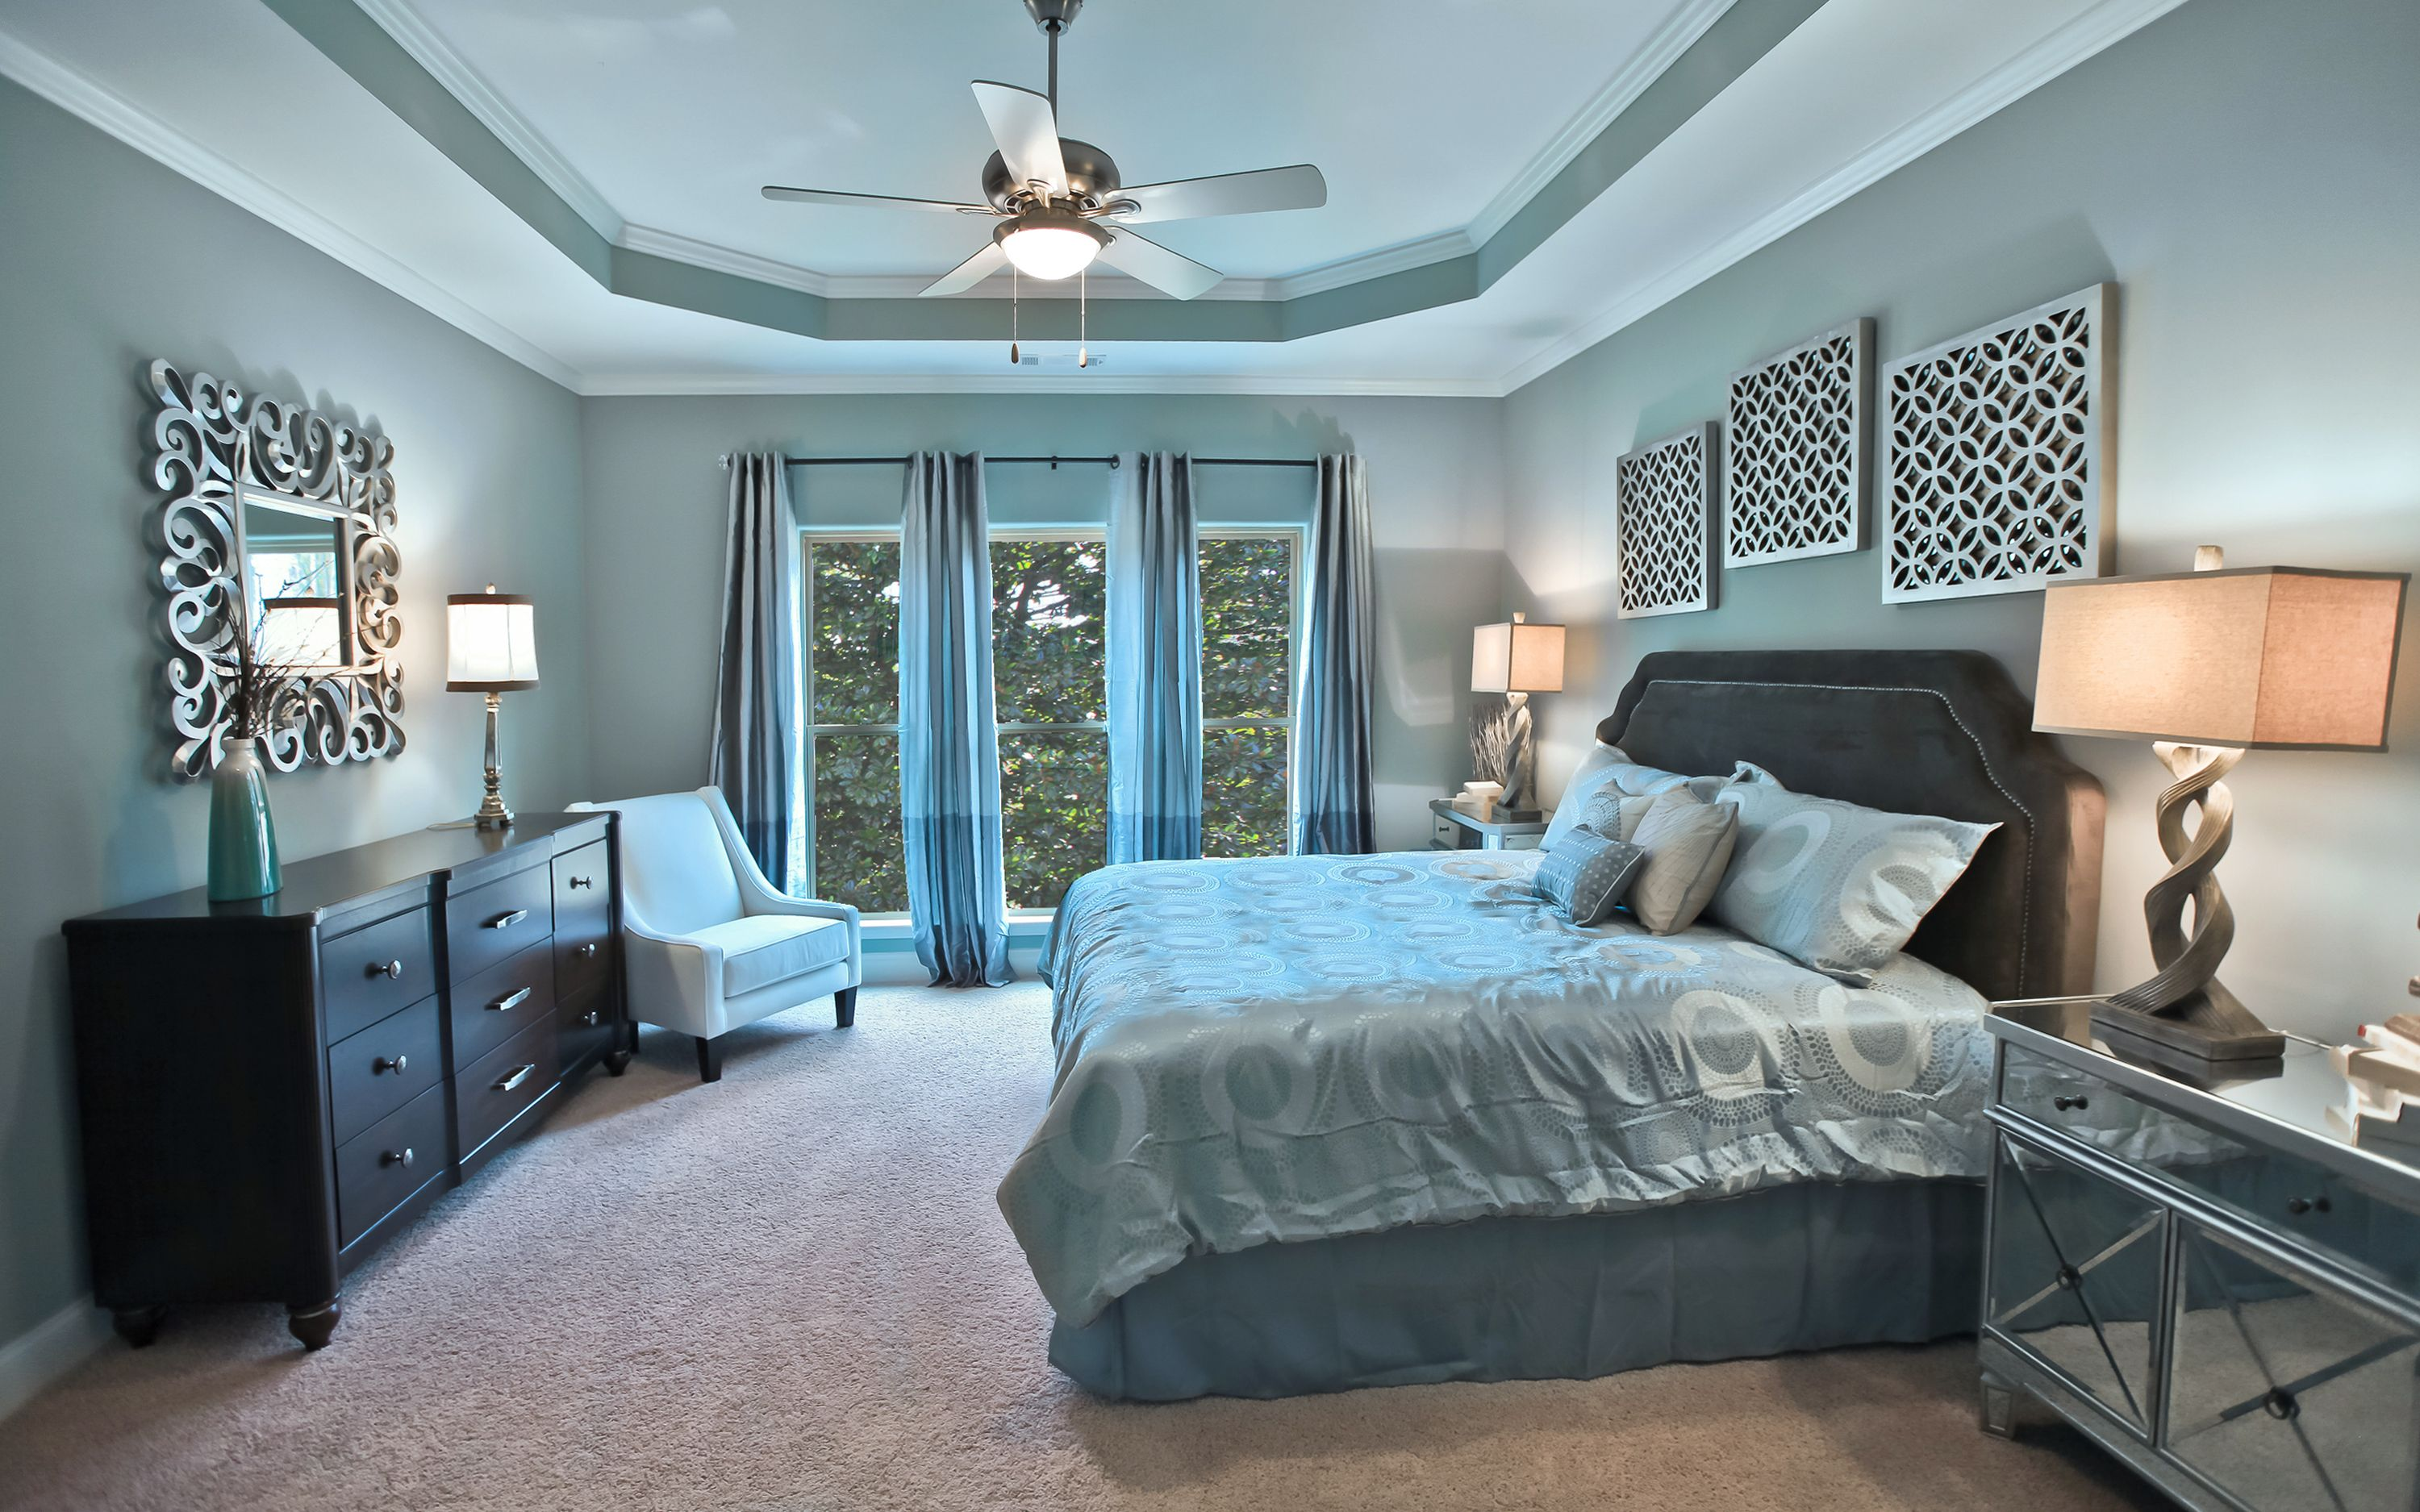 The Beautifully Decorated Master Bedroom Inside The Model